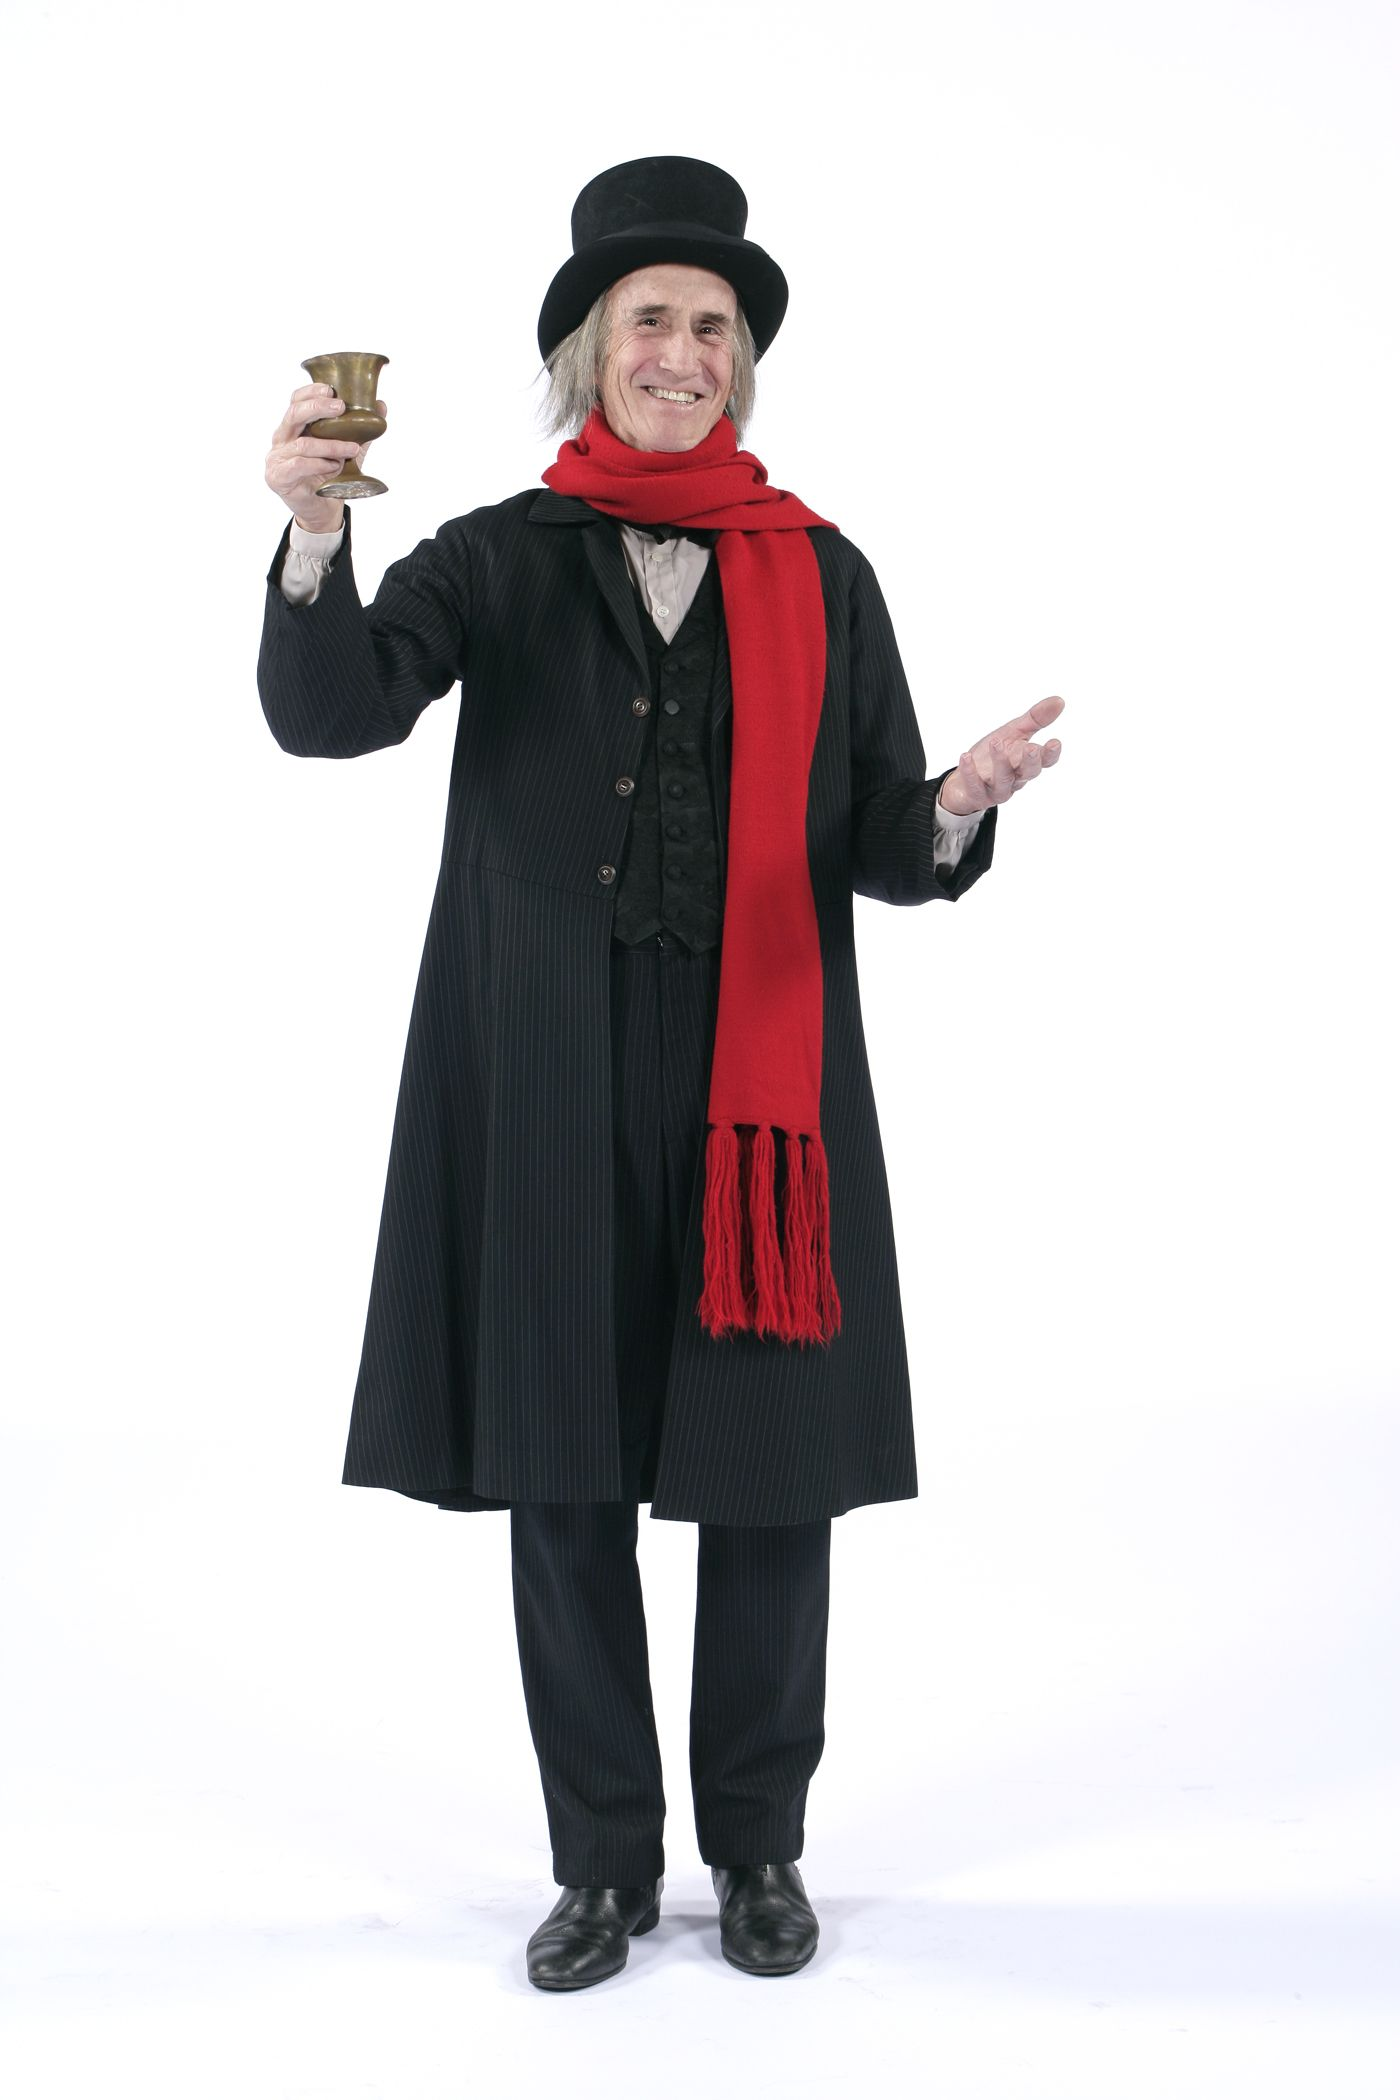 christmas carol costumes - Google Search  sc 1 st  Pinterest & christmas carol costumes - Google Search | Costume | Pinterest ...